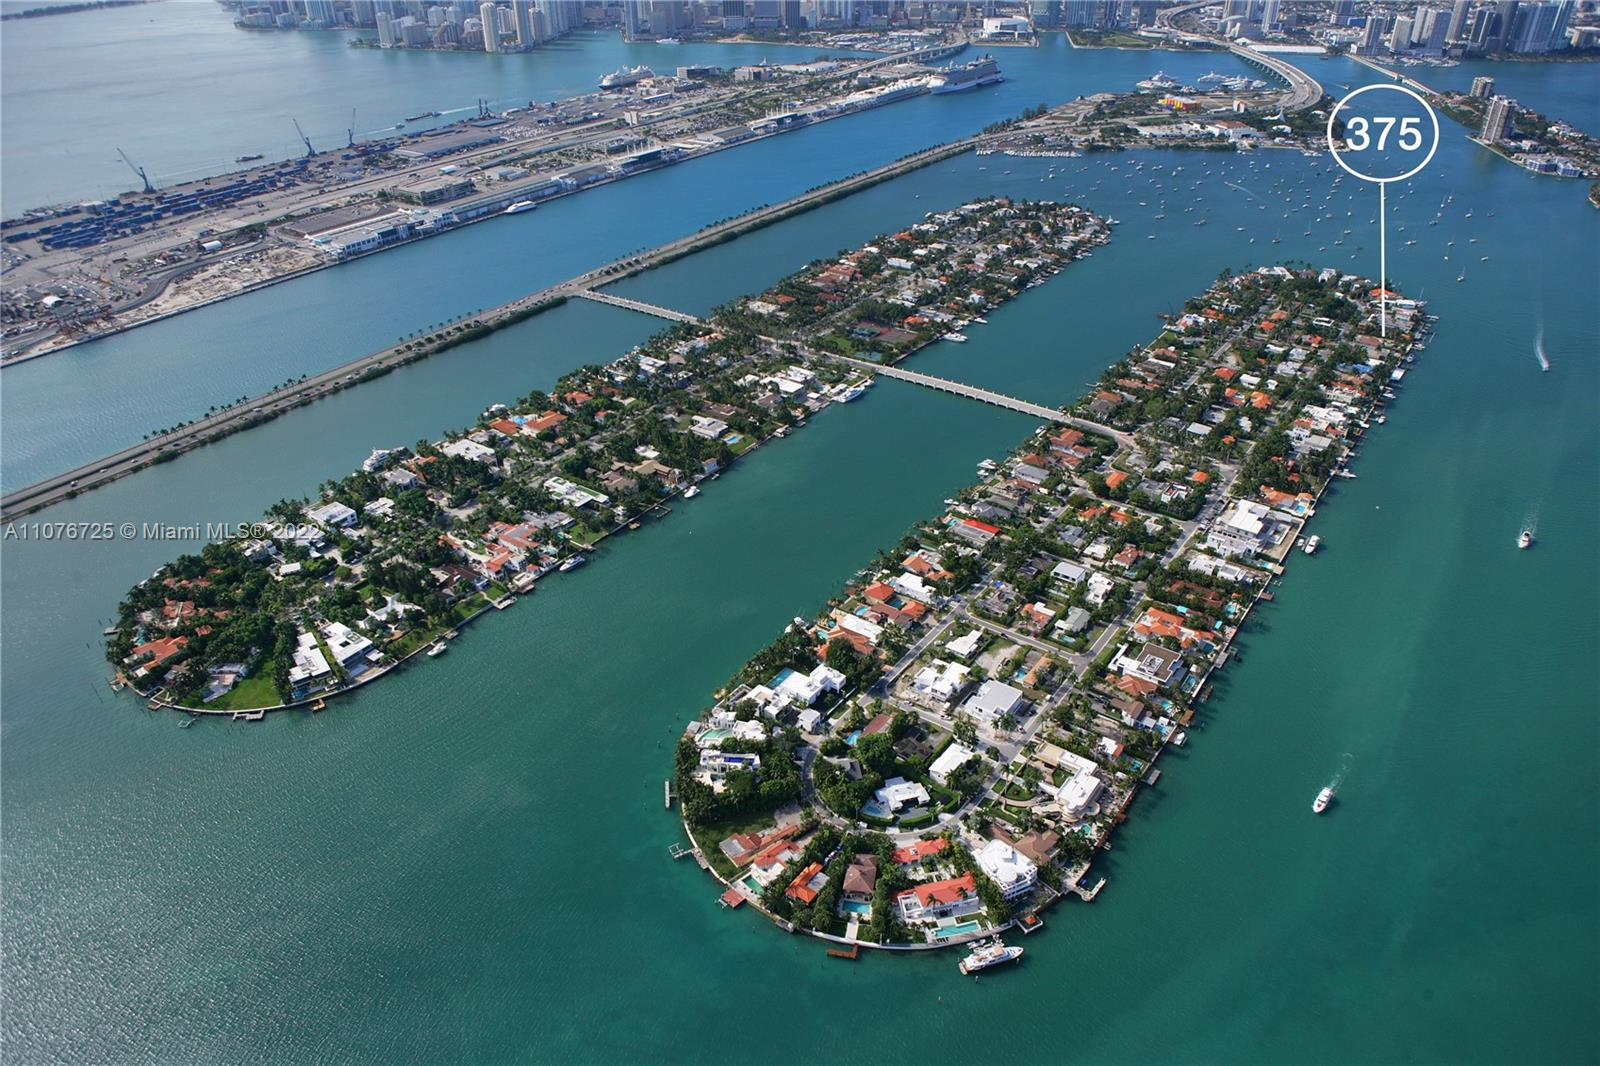 Ultra-luxury waterfront on Hibiscus Island offering serene views of the bay and Edgewater skyline, developed in collaboration by Artefacto Miami and Todd M. Glaser with modern architecture by Kobi Karp and interior designed + home staging by Artefacto Miami! To maximize use of the deep 175-foot lot, the home will have a main house sited by the 90-FT waterfrontage & a guesthouse with 3-car garage on the front, connected with a courtyard!  Inside the 7,869-SF, 8-Bed 9.5-bath home, exceptional living areas overflowed with water views, gourmet kitchen, master suite suited for royalty, superior finishes, deluxe baths, high ceilings. Outside, pool, cabana, summer kitchen, new seawall and a large dock for docking multiple boats. A secluded paradise in the heart of Miami Beach. Completion 2022!